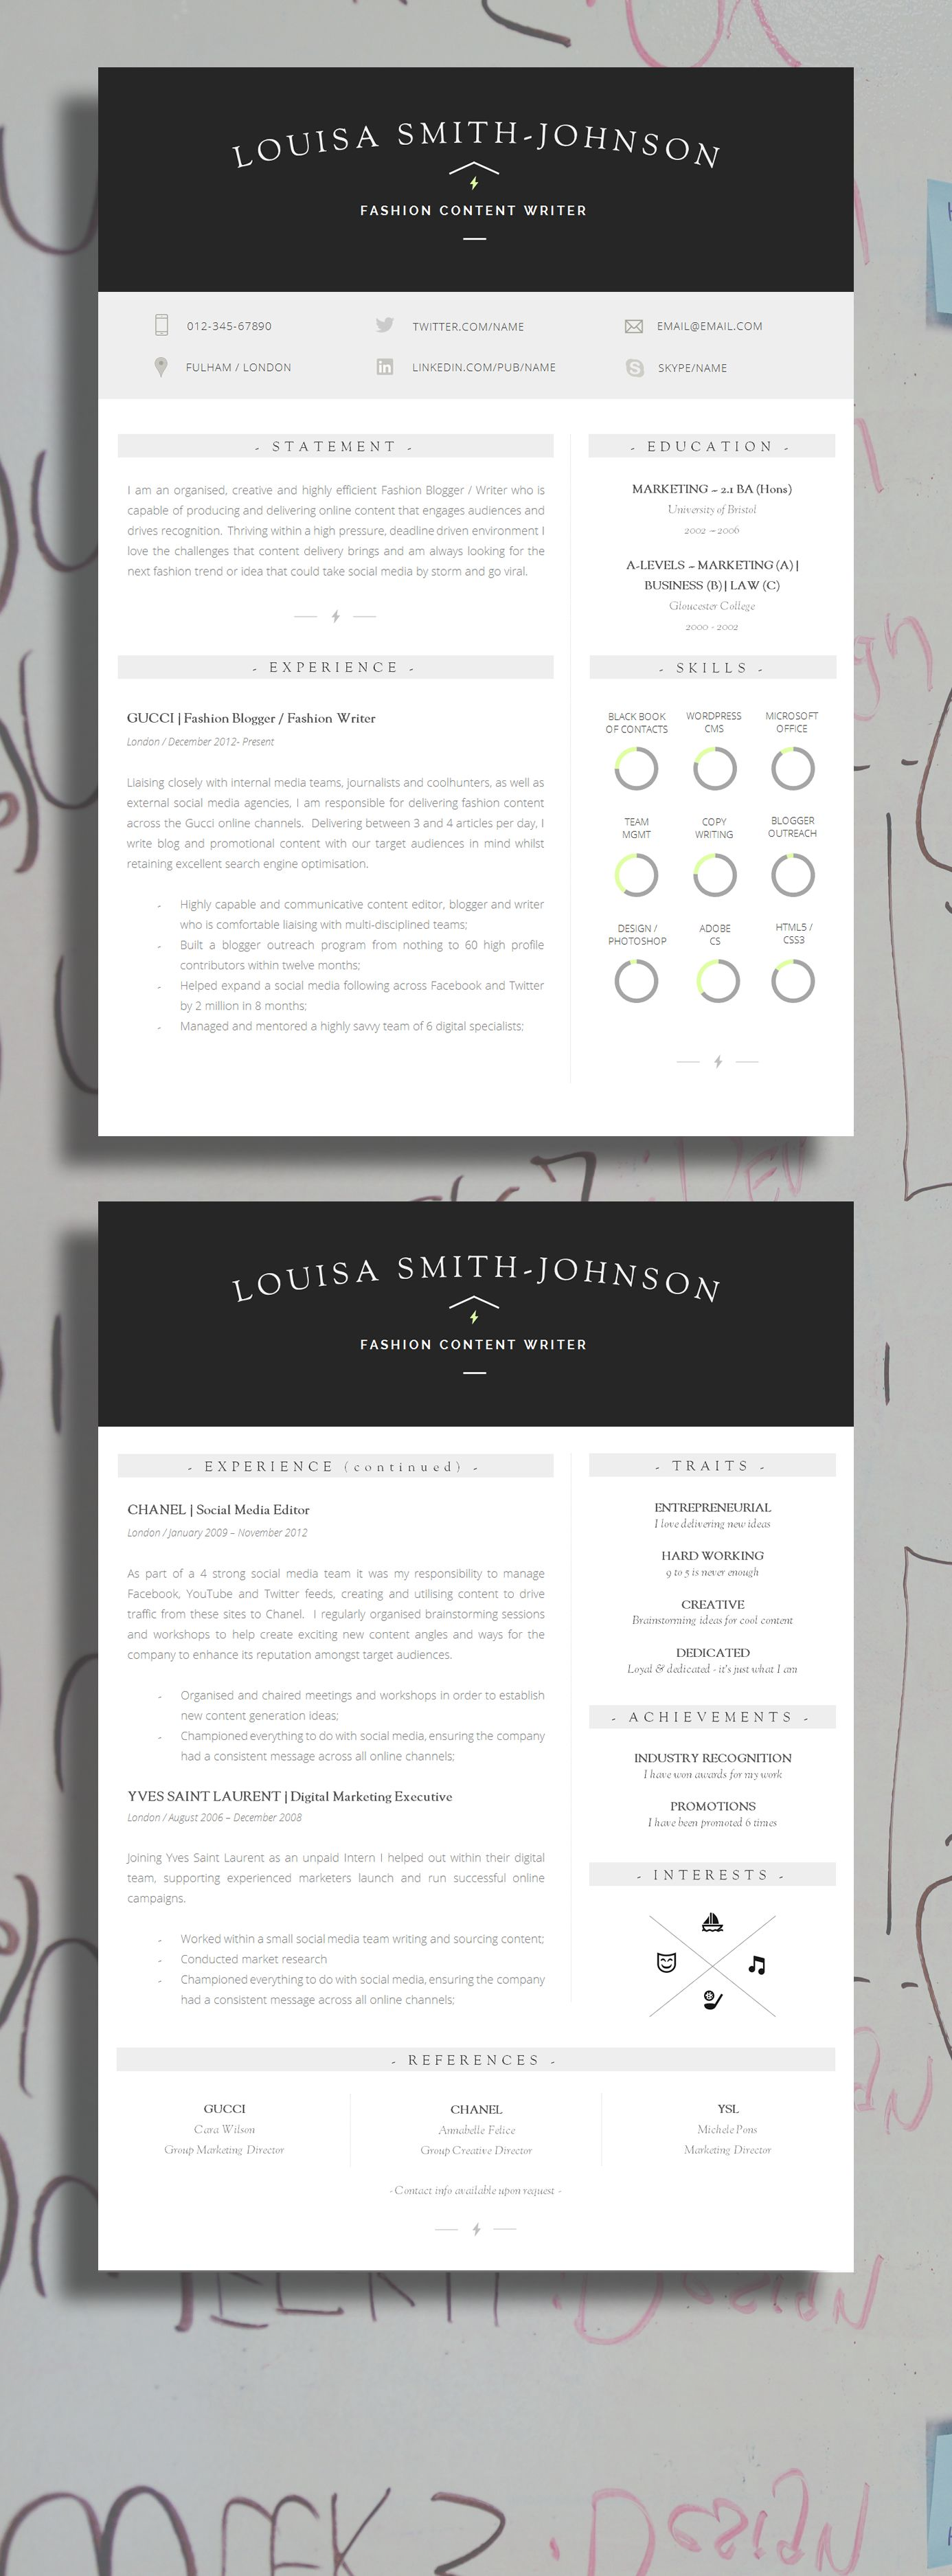 Resume Design | Resume Template + Cover Letter + Resume Guide + ...